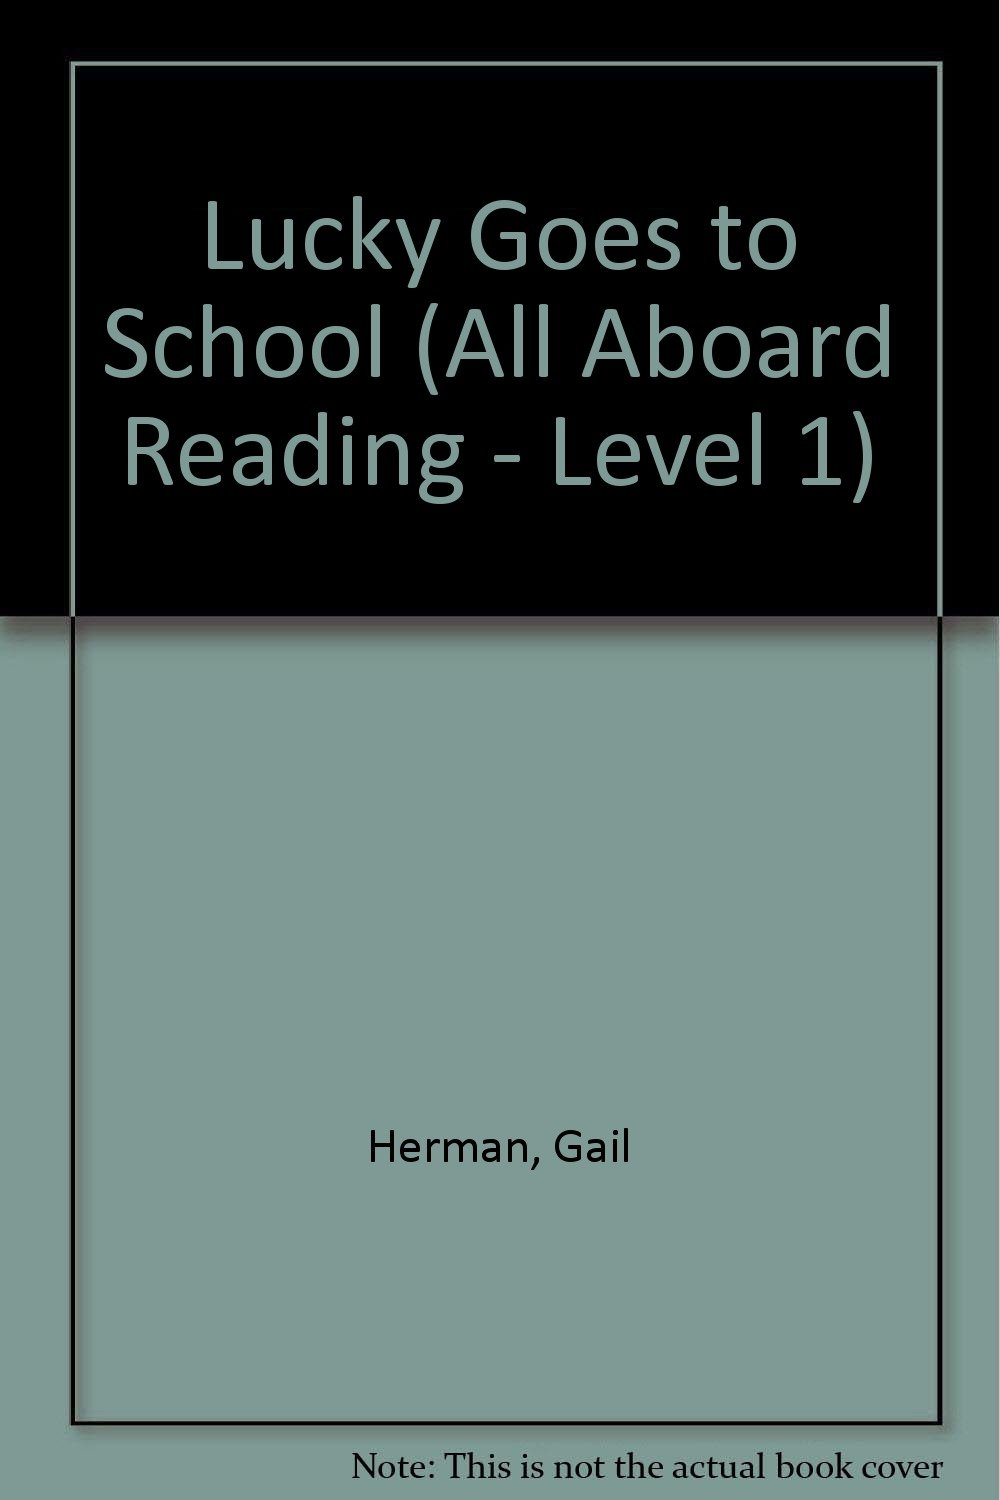 Download Lucky Goes to School GB (All Aboard Reading) pdf